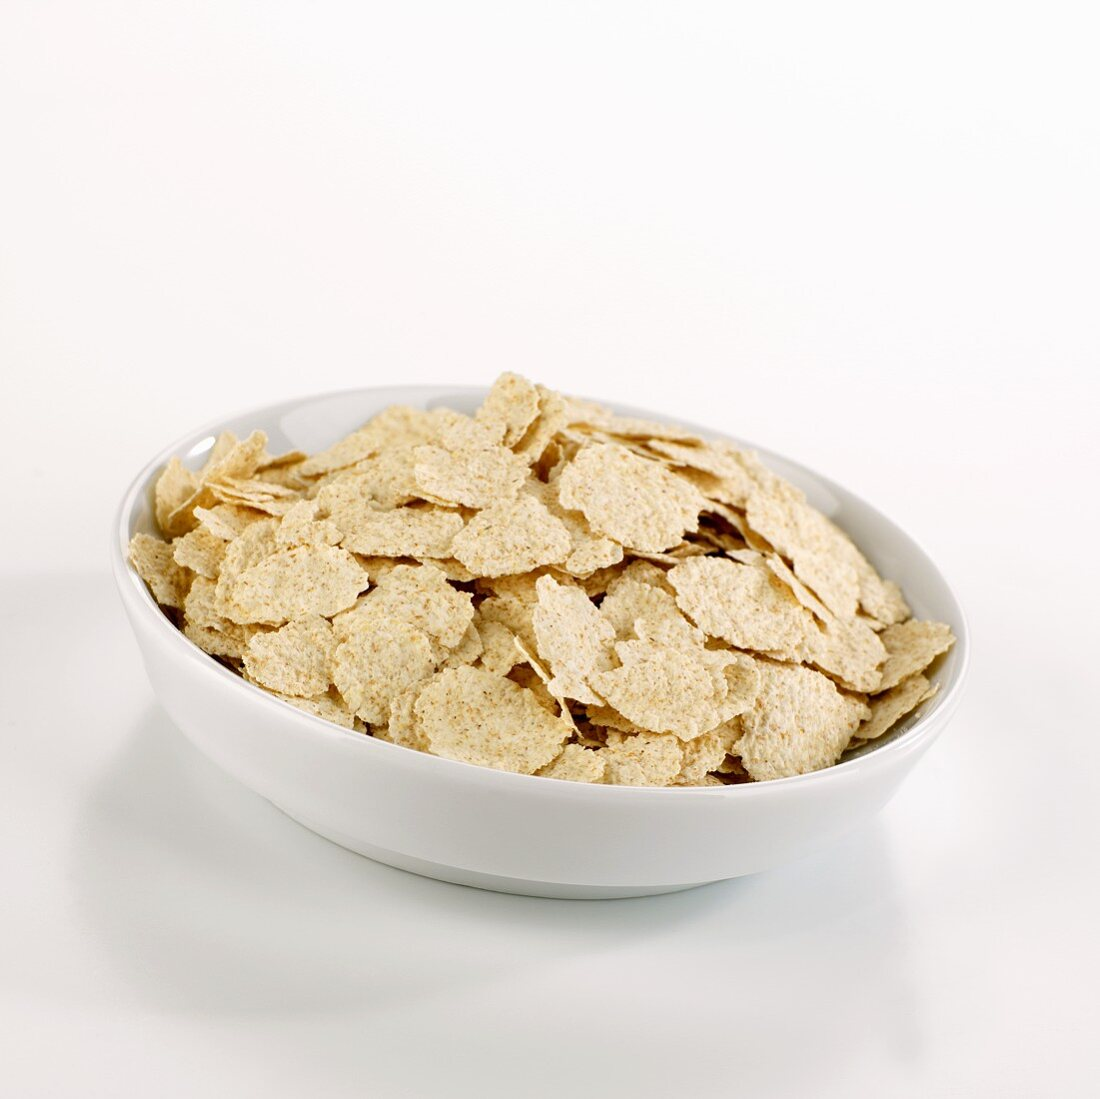 Organic spelt flakes in a dish